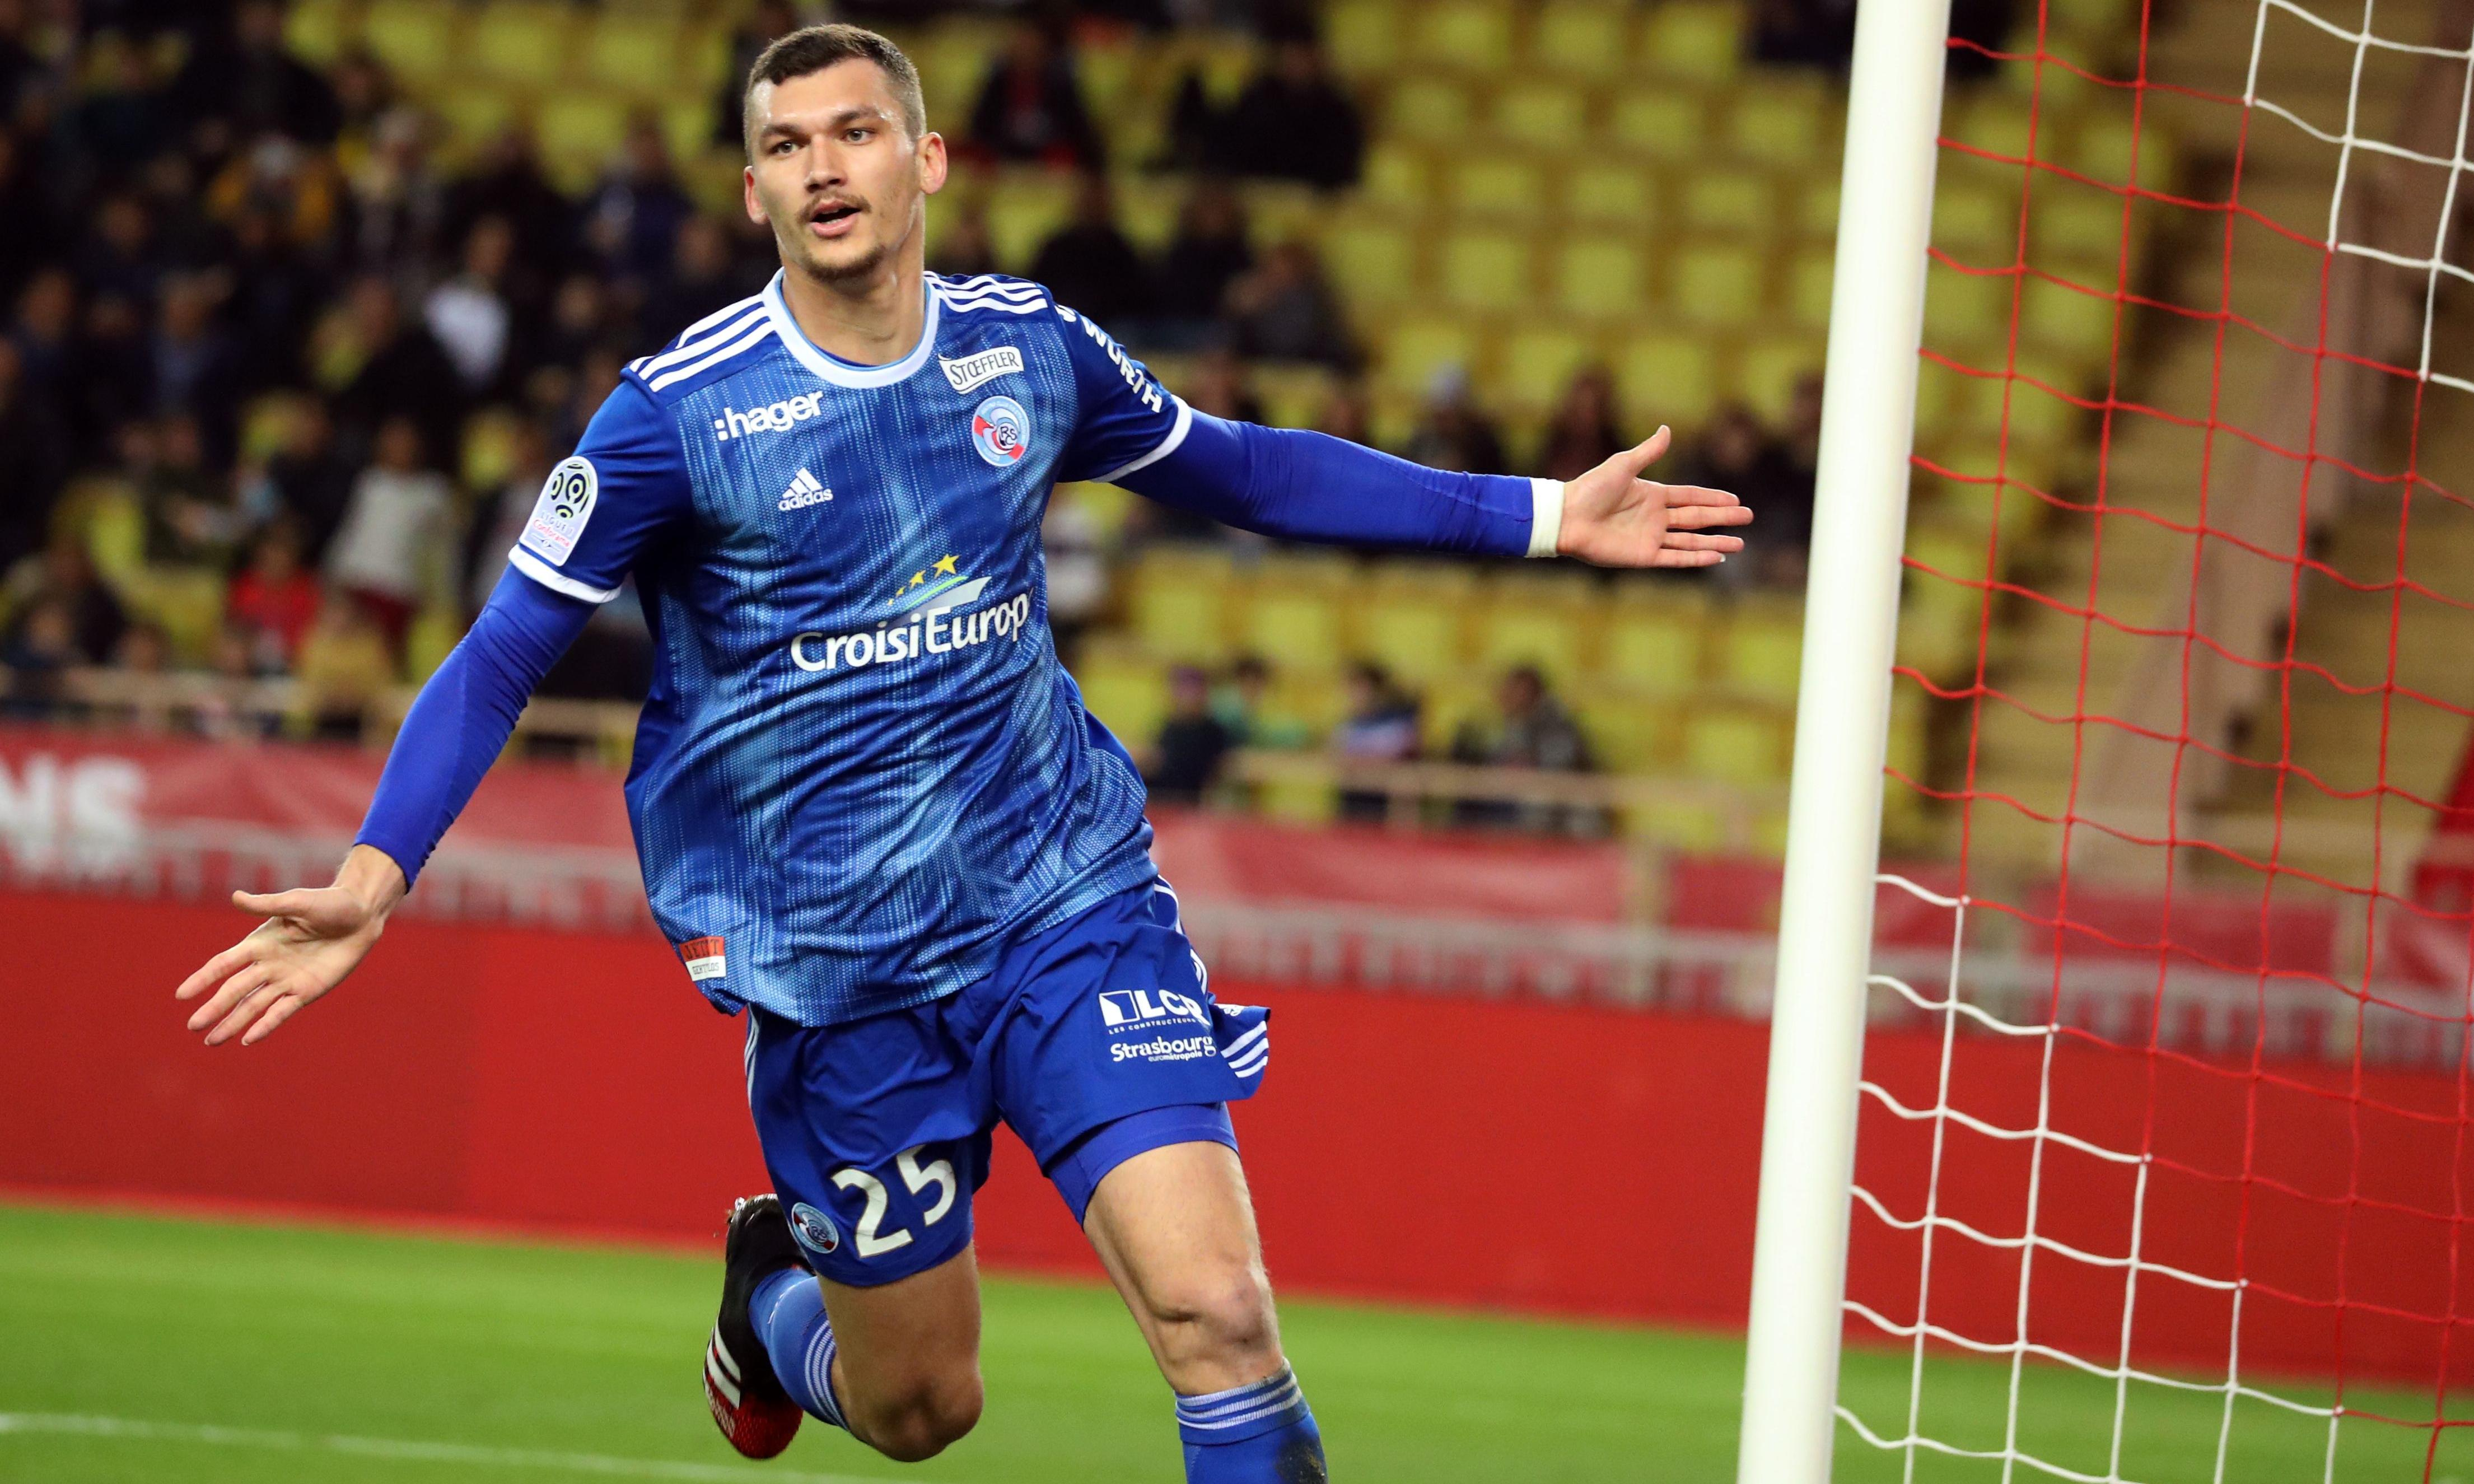 Strasbourg swat aside Monaco as they set their sights on Europe